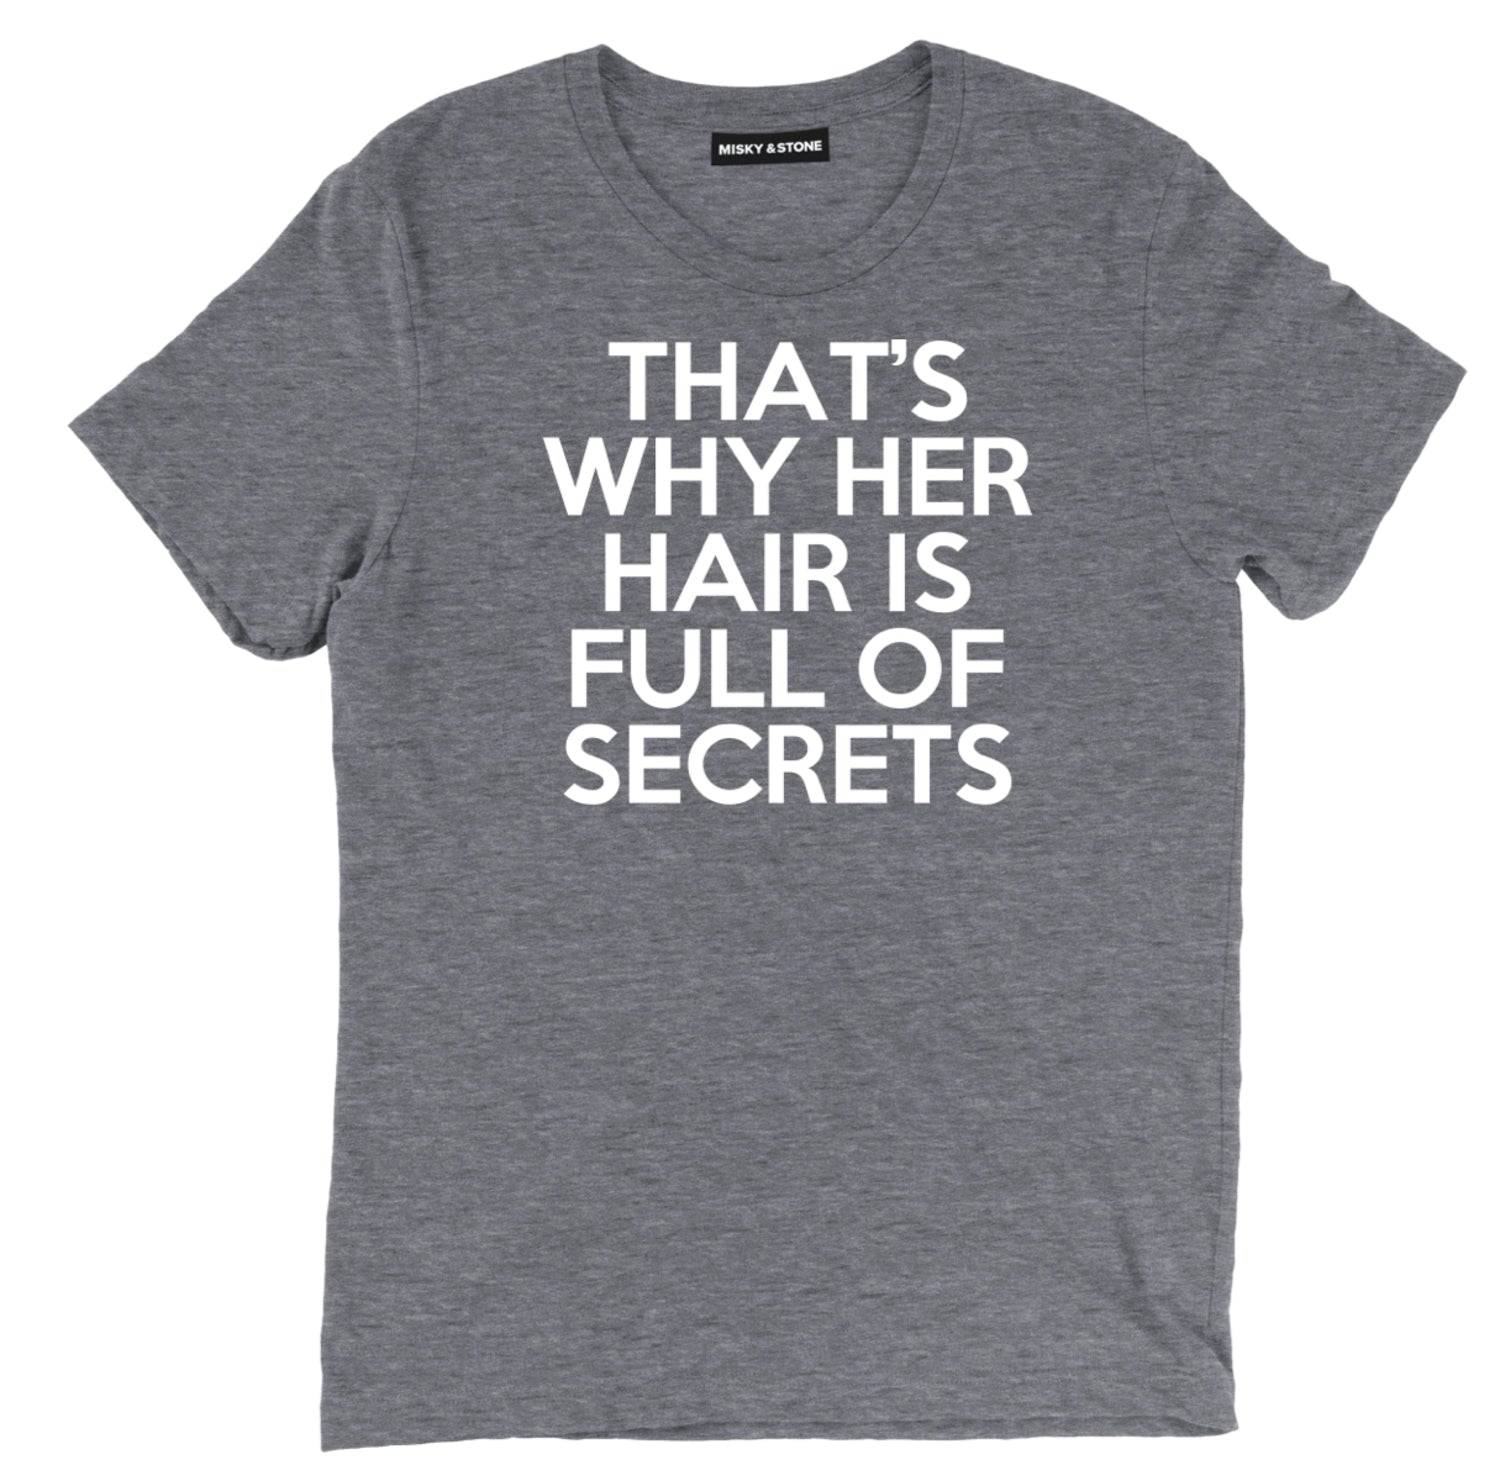 thats why her hair is full of secrets t shirt, mean girls hair full of secrets tee, funny mean girls movie tee